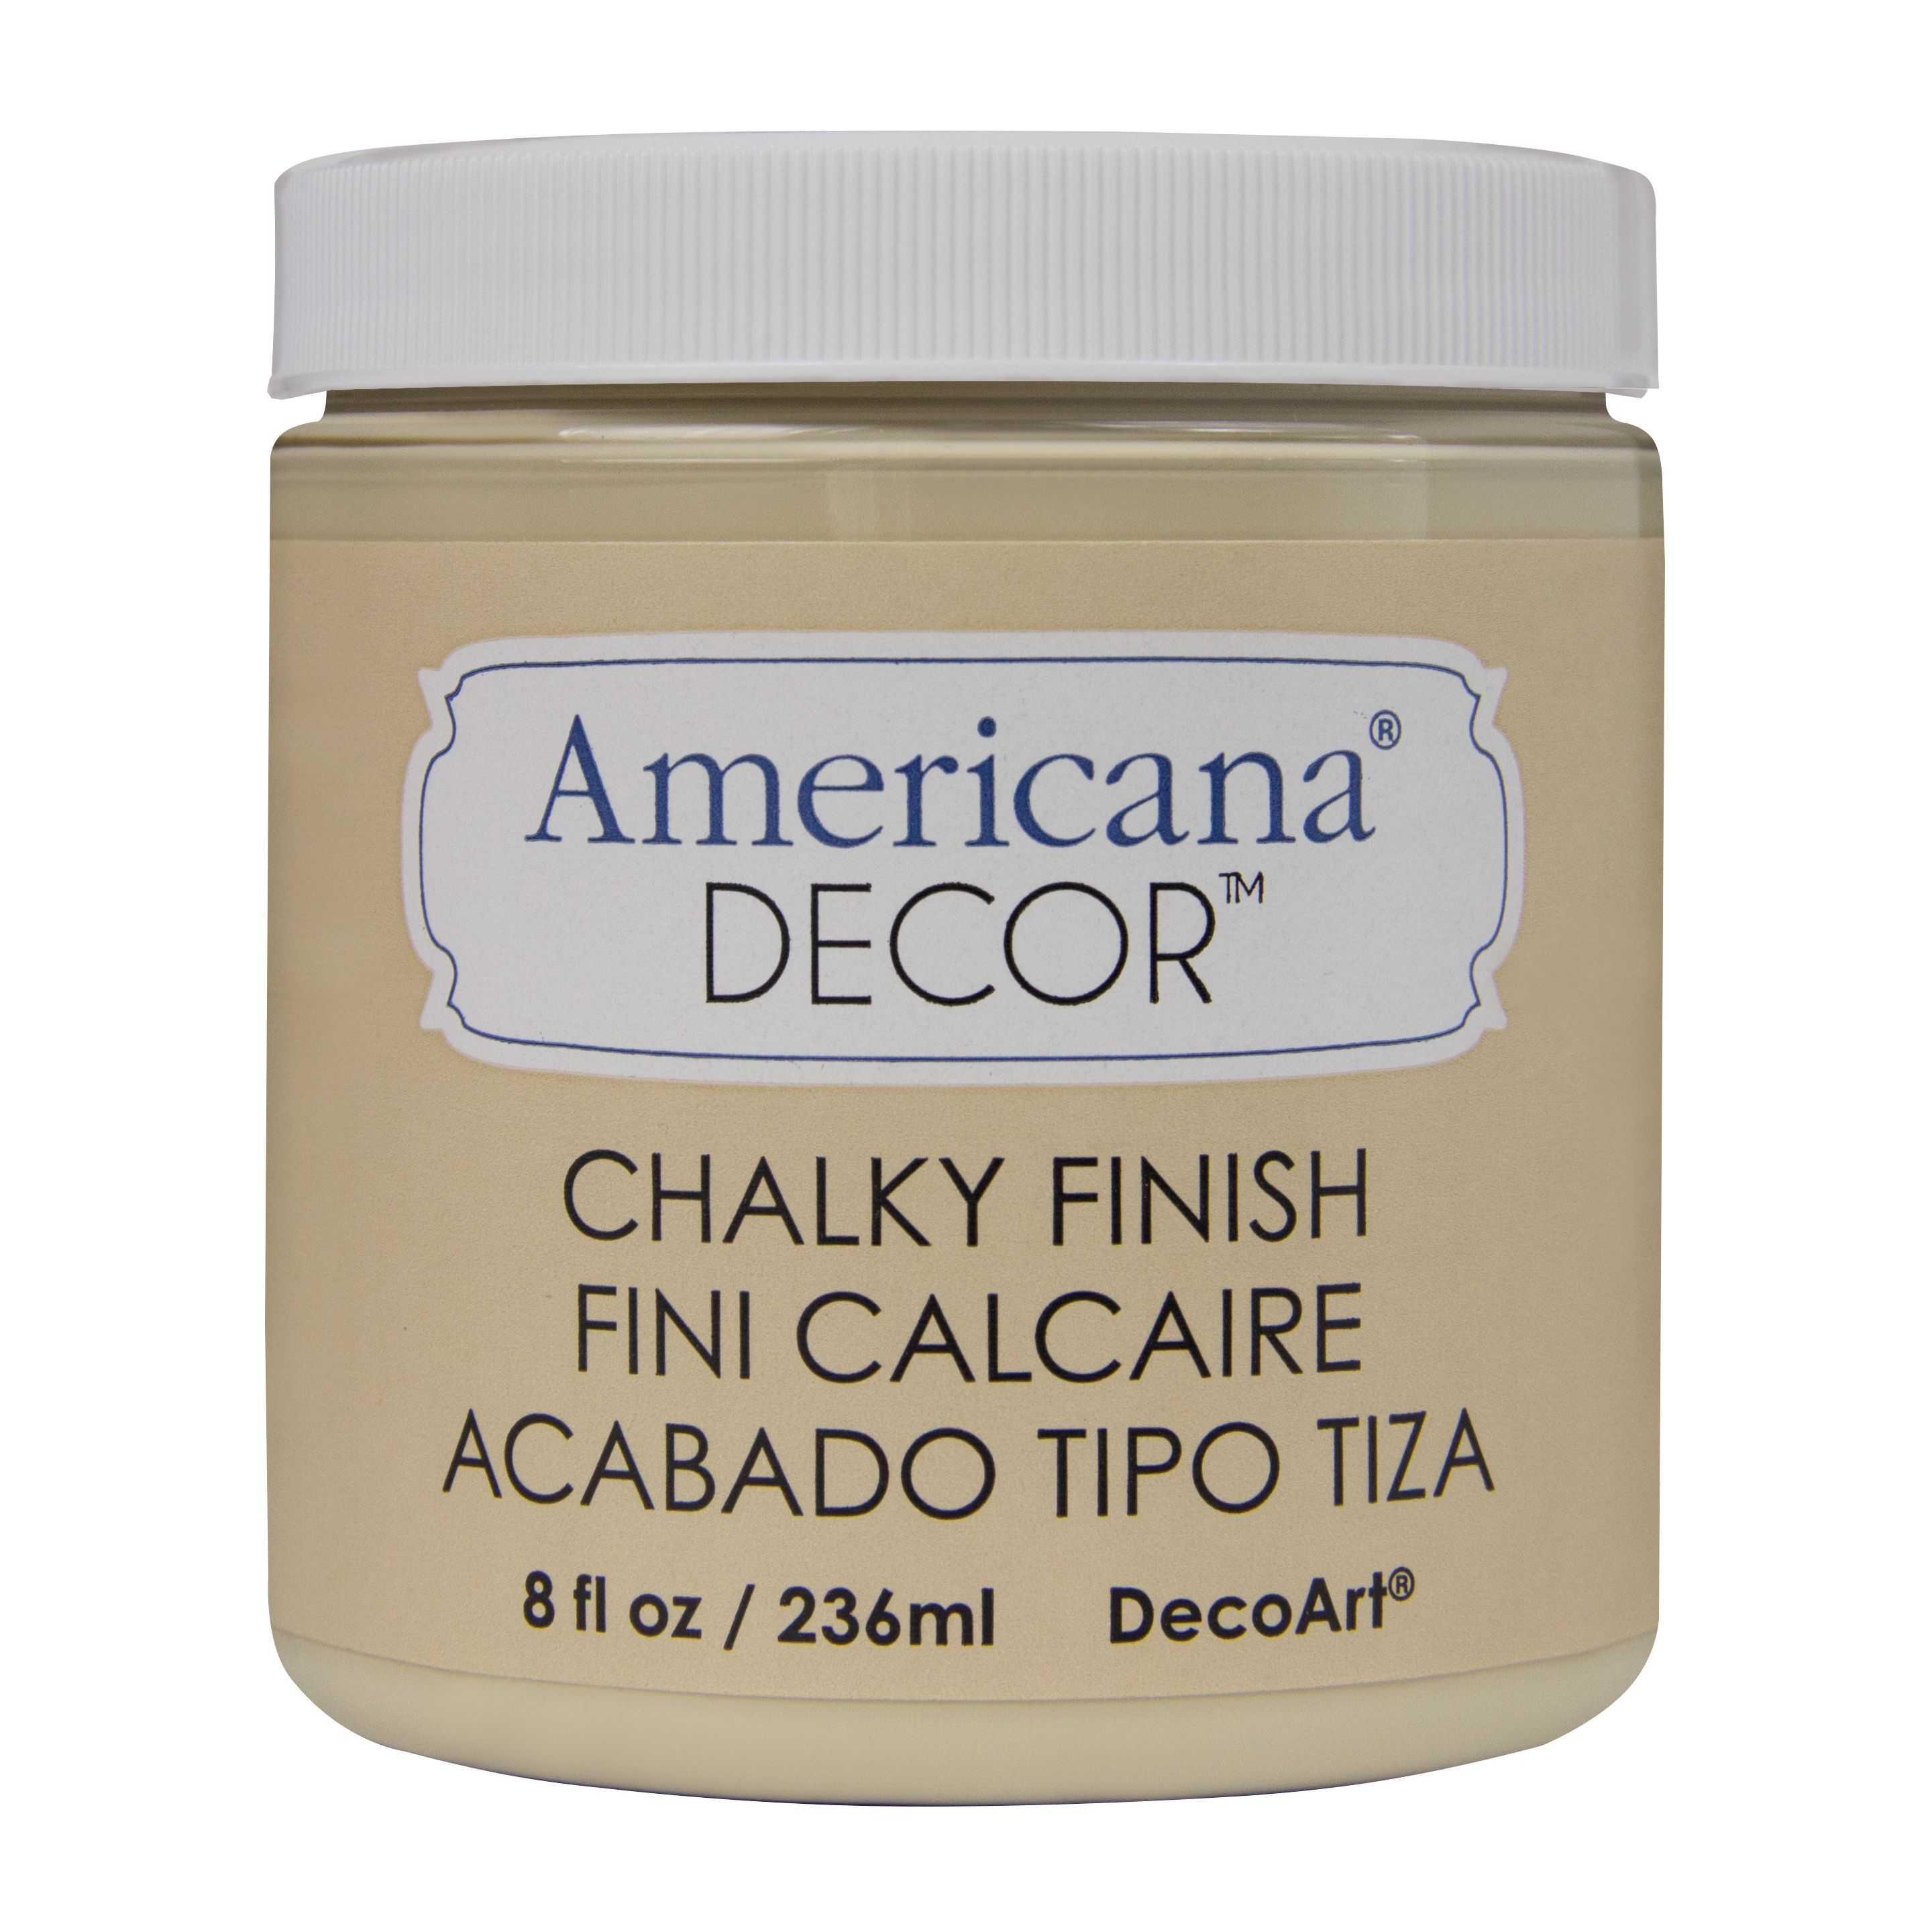 TIMELESS CHALKY FINISH 236ml AMERICANA DECOR